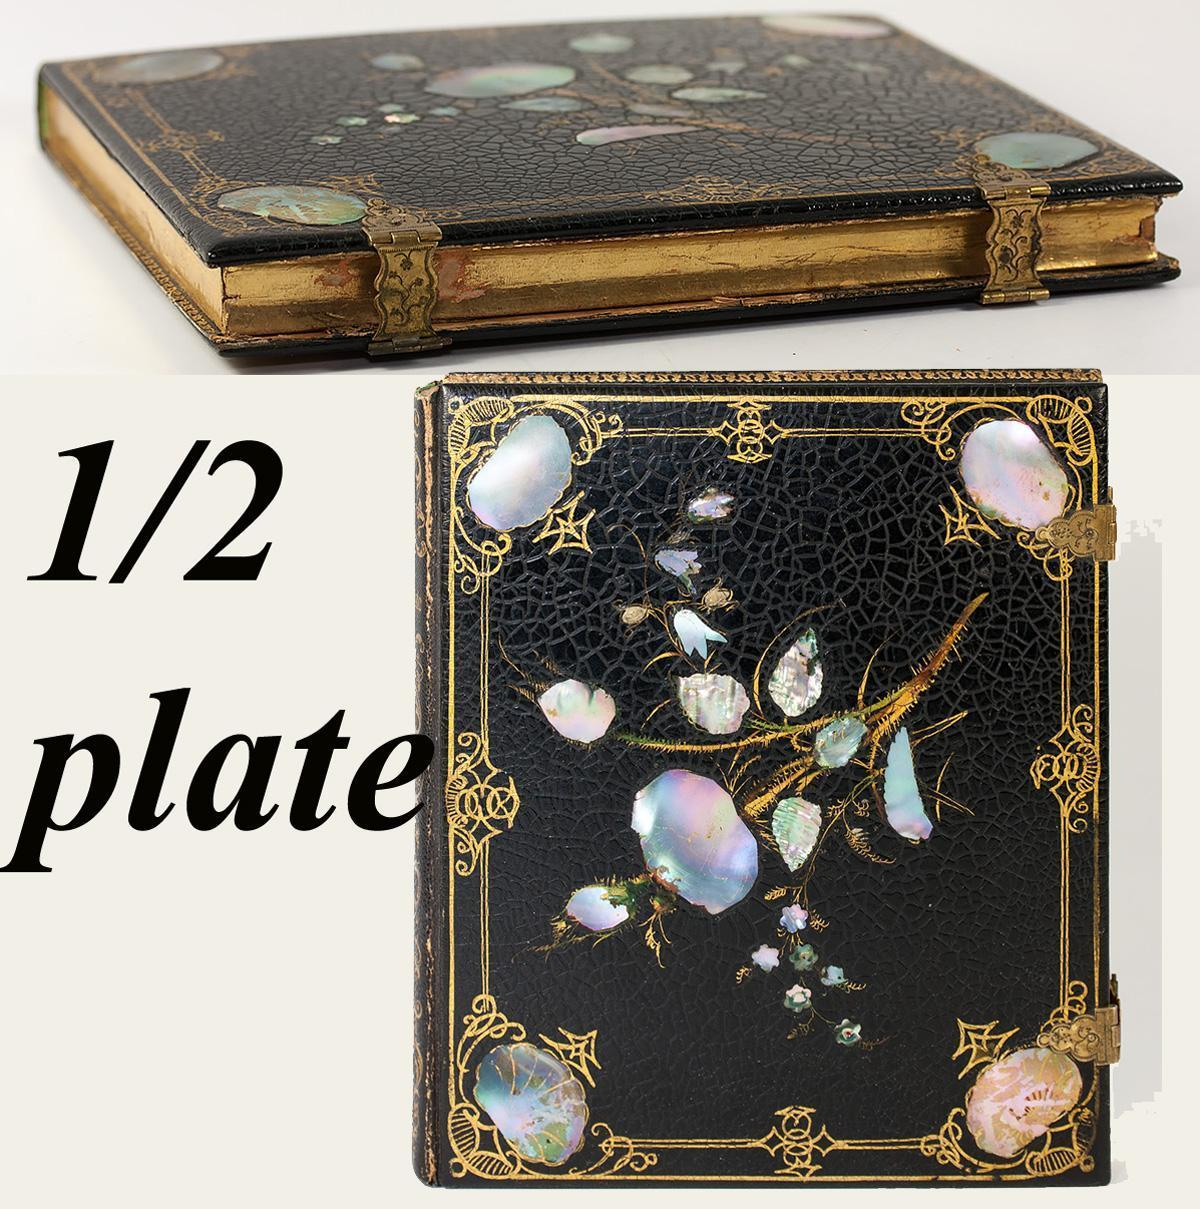 V RARE Antique Papier Mache Union Case, Half Plate, 1/2 Plate Daguerreotype Case